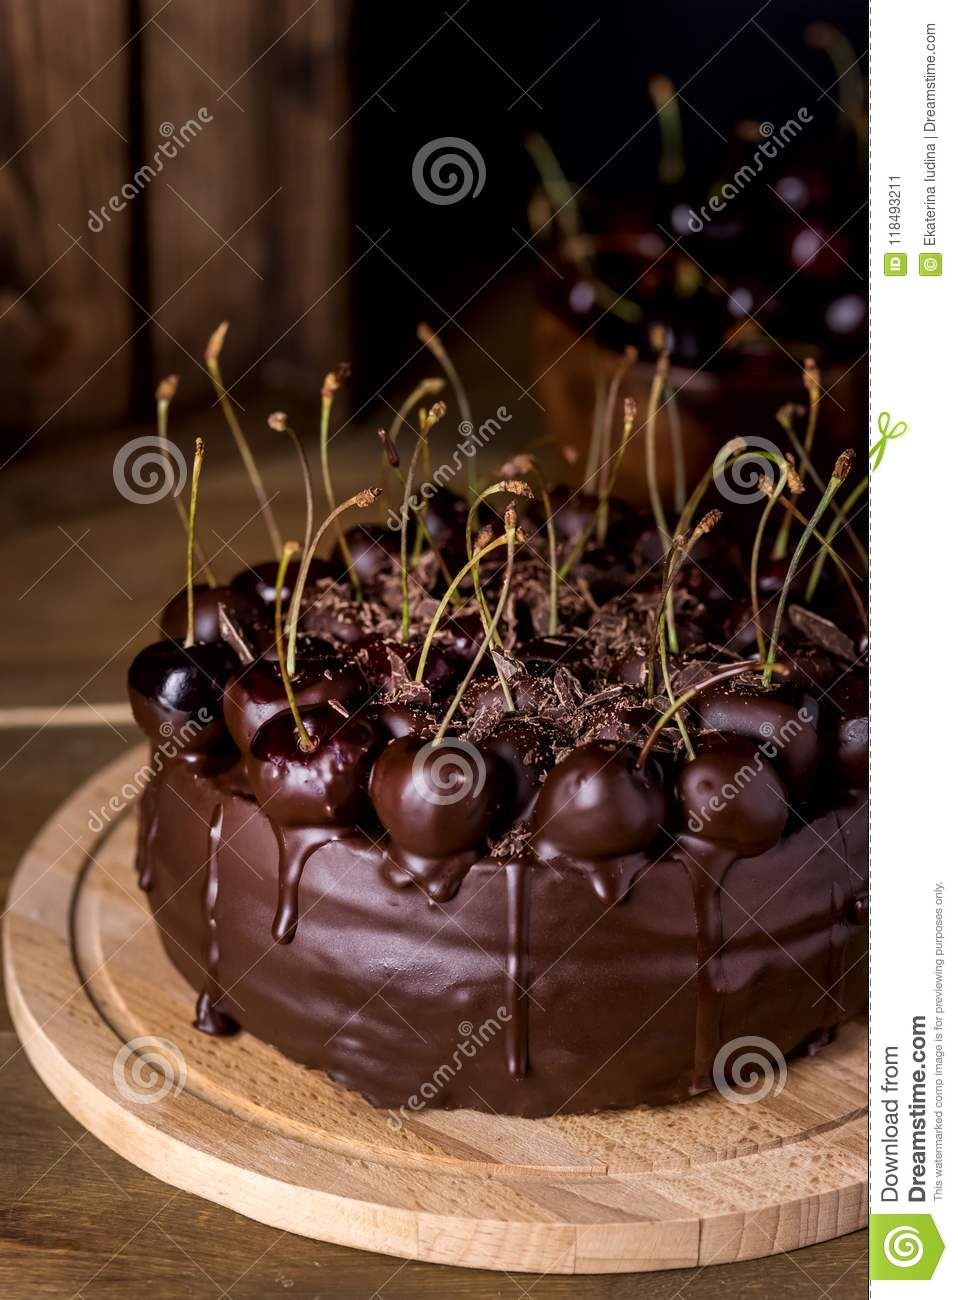 Chocolate Cake Decorated With Cherries With Chocolate Vertical Rustic Dark Photo Tasty And Beautiful Cake Stock Image Image Of Birthday Gourmet 118493211